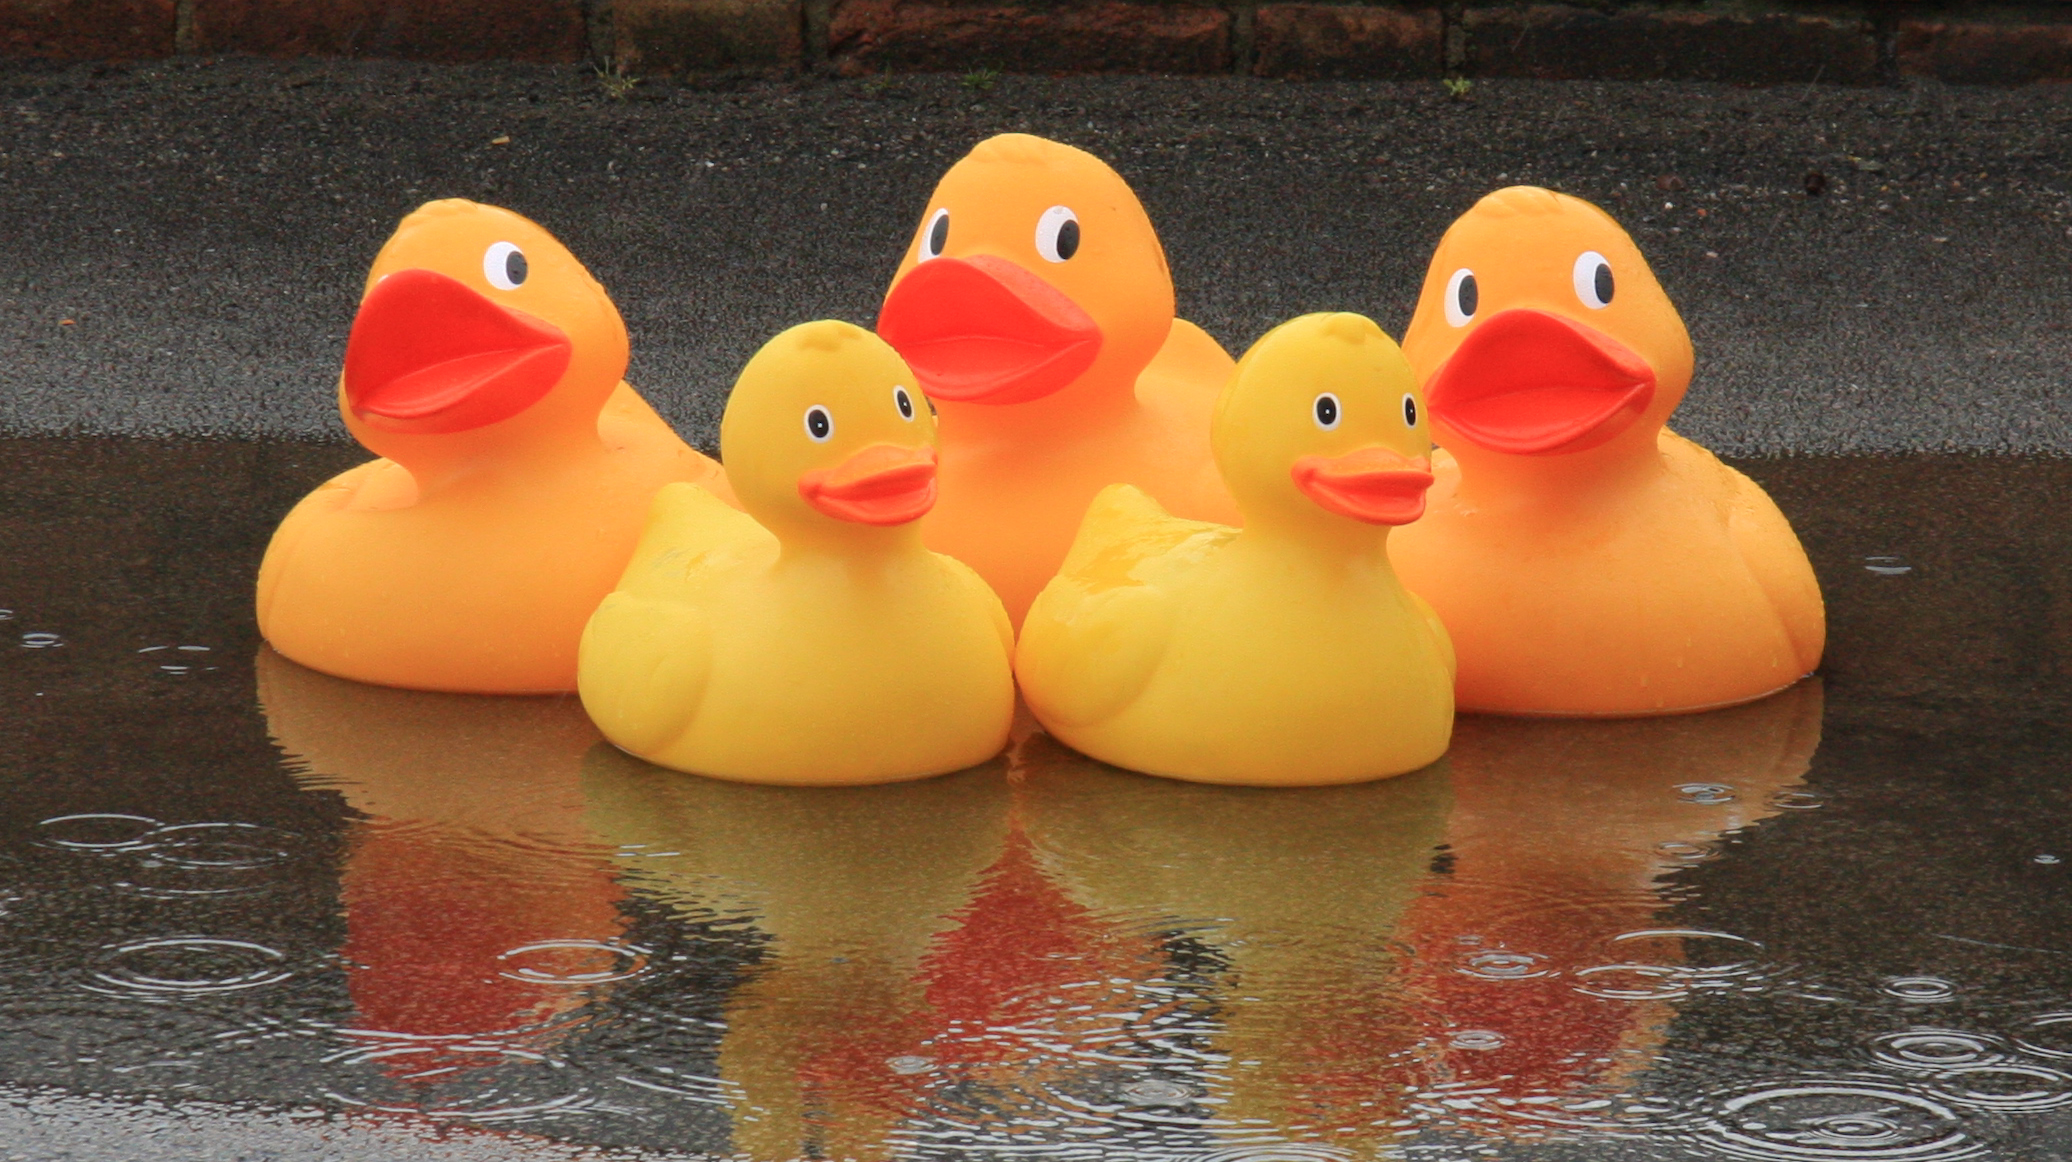 Five large plastic ducks sitting in a puddle